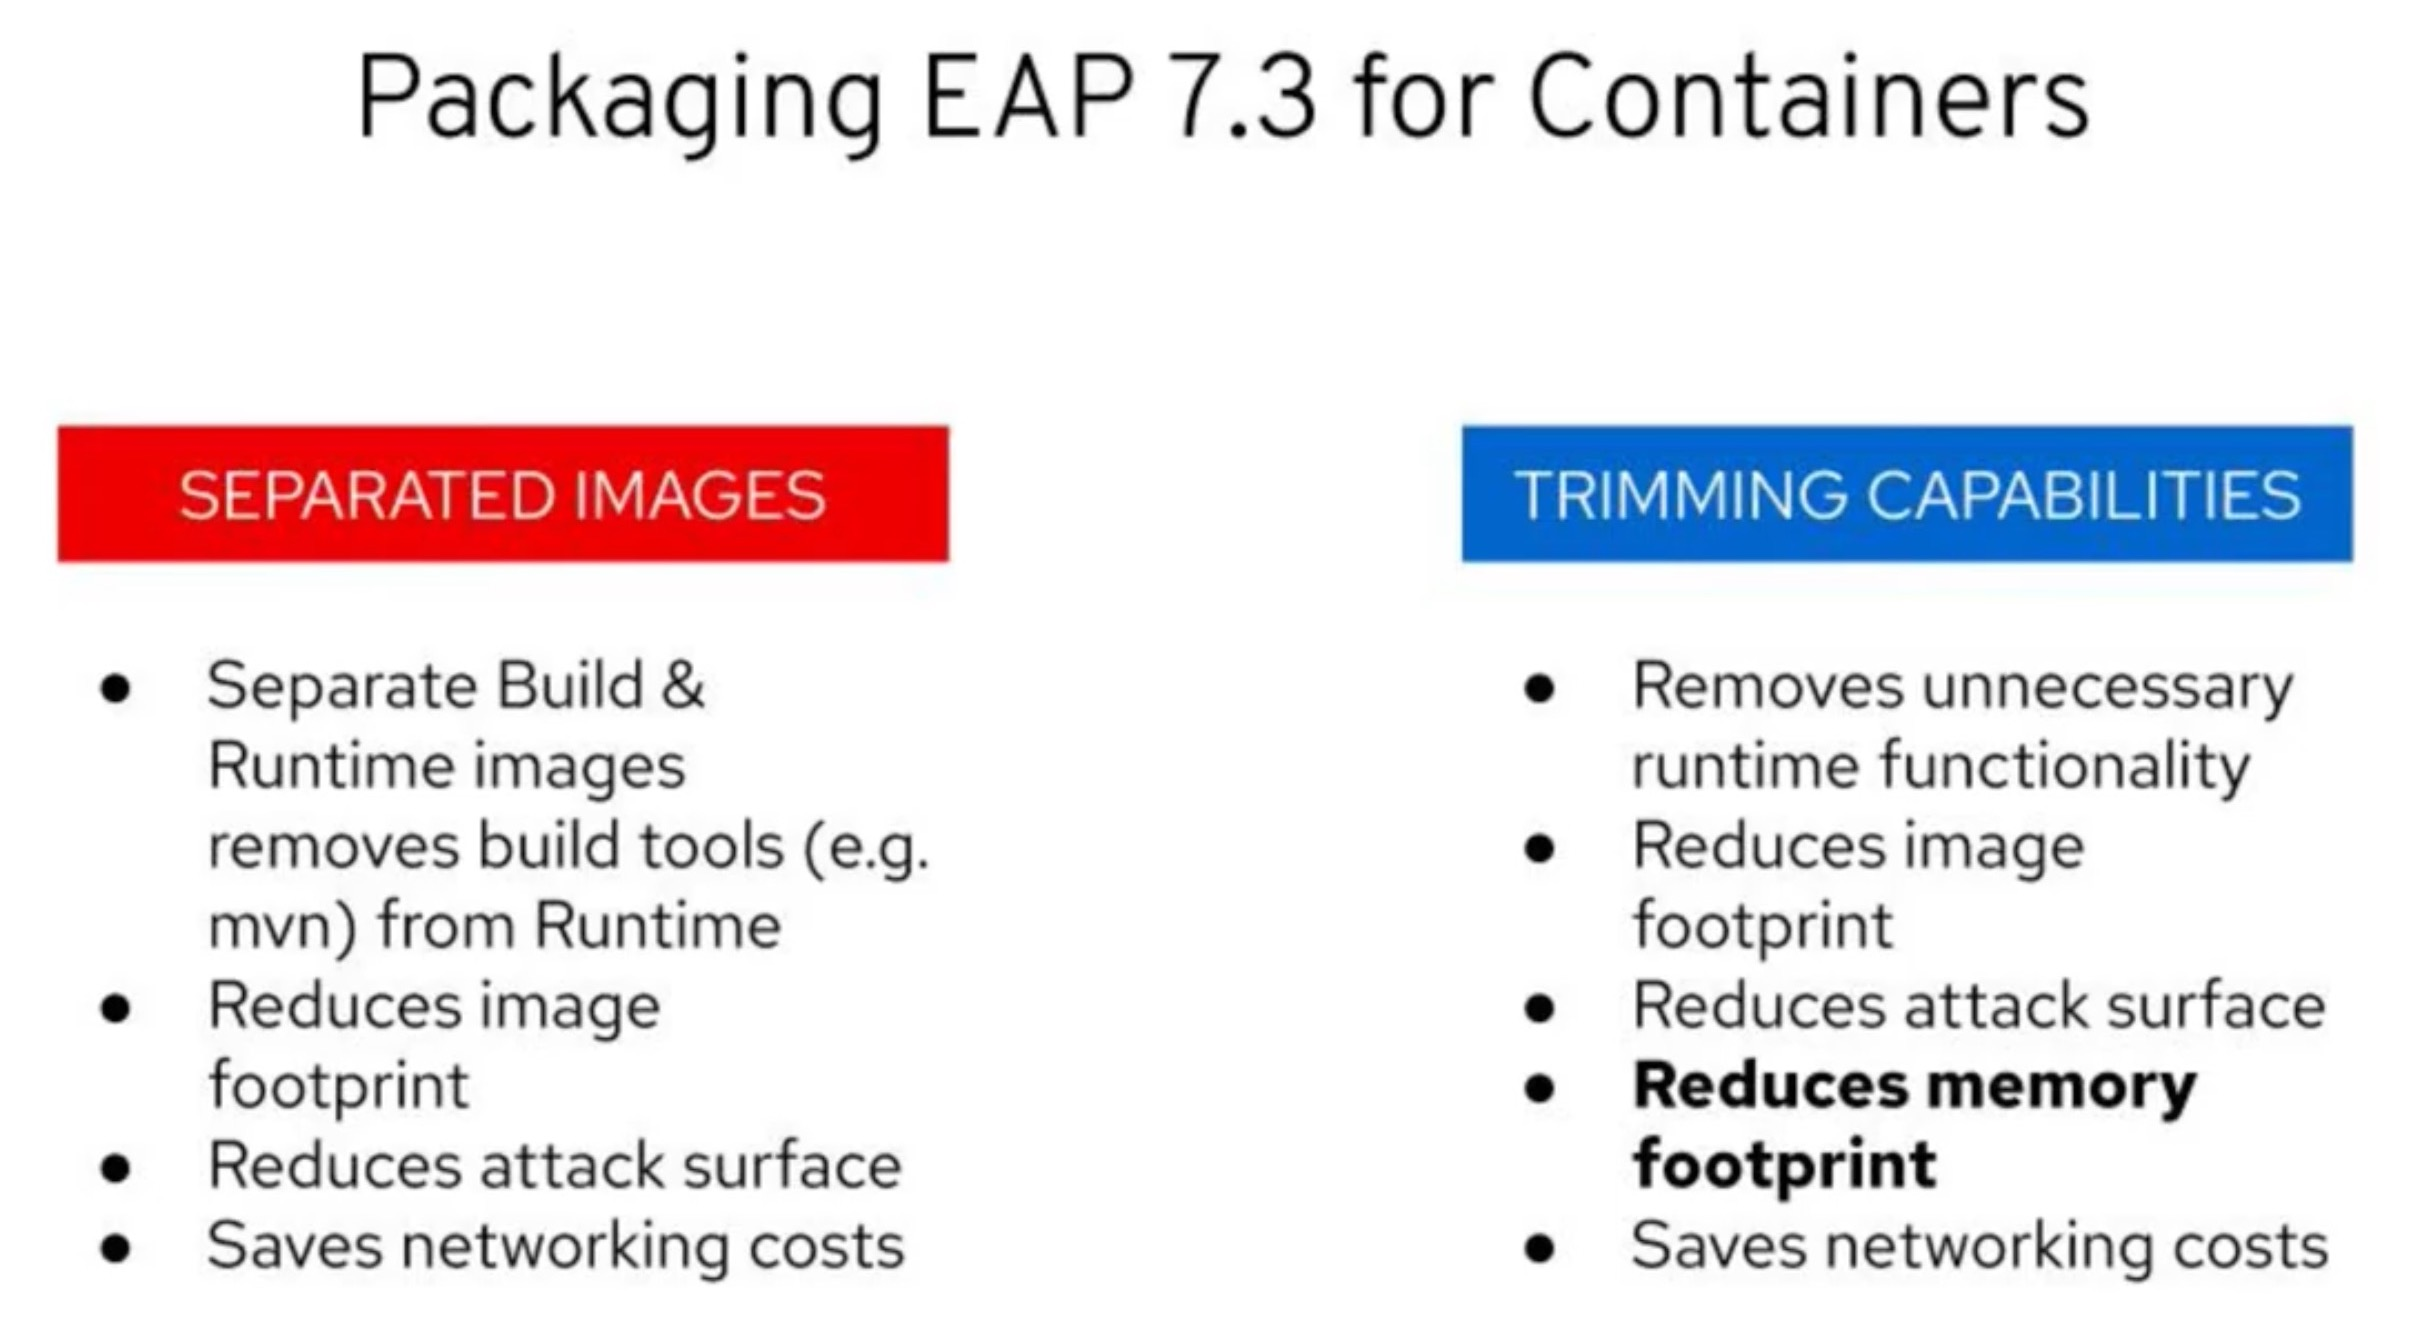 JBoss EAP 7.3 brings new packaging capabilities